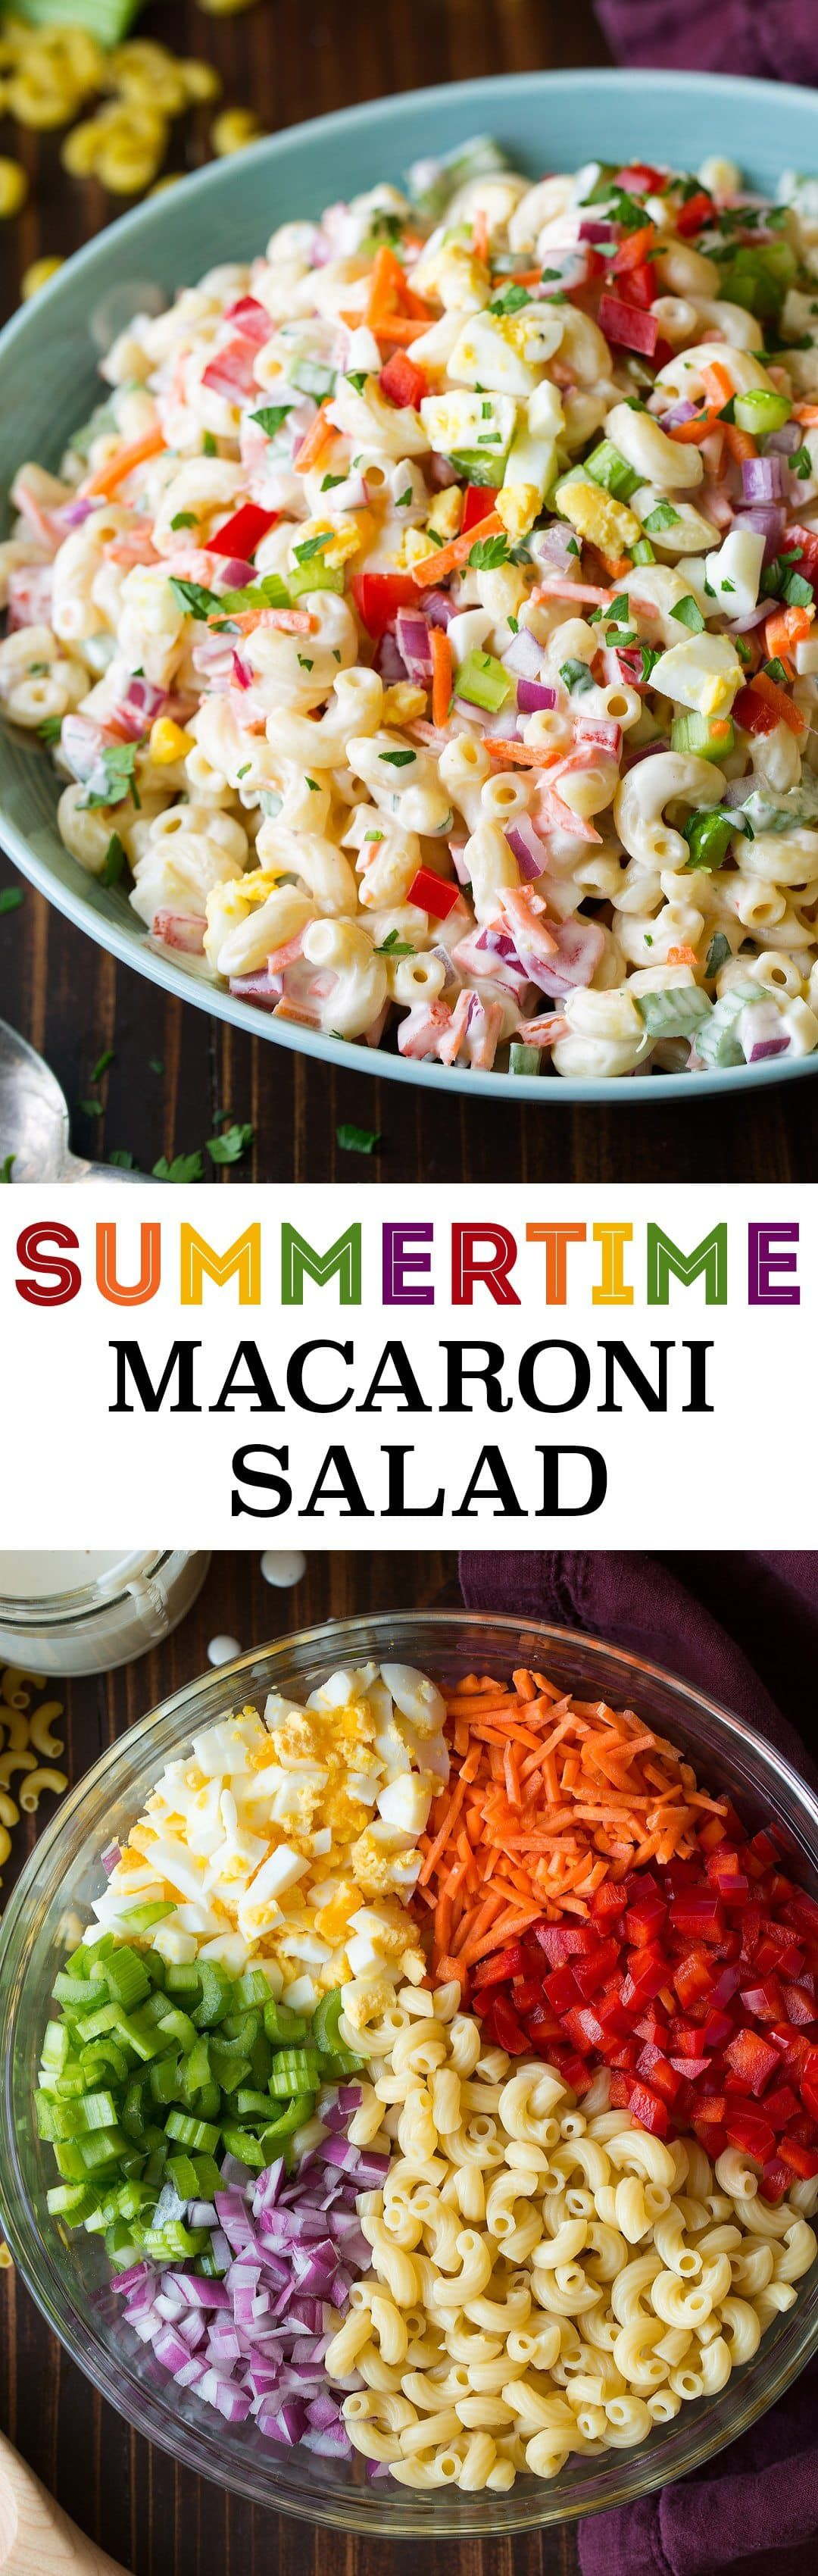 Classic Macaroni Salad {Easy Go-To Side Dish!} - Cooking Classy